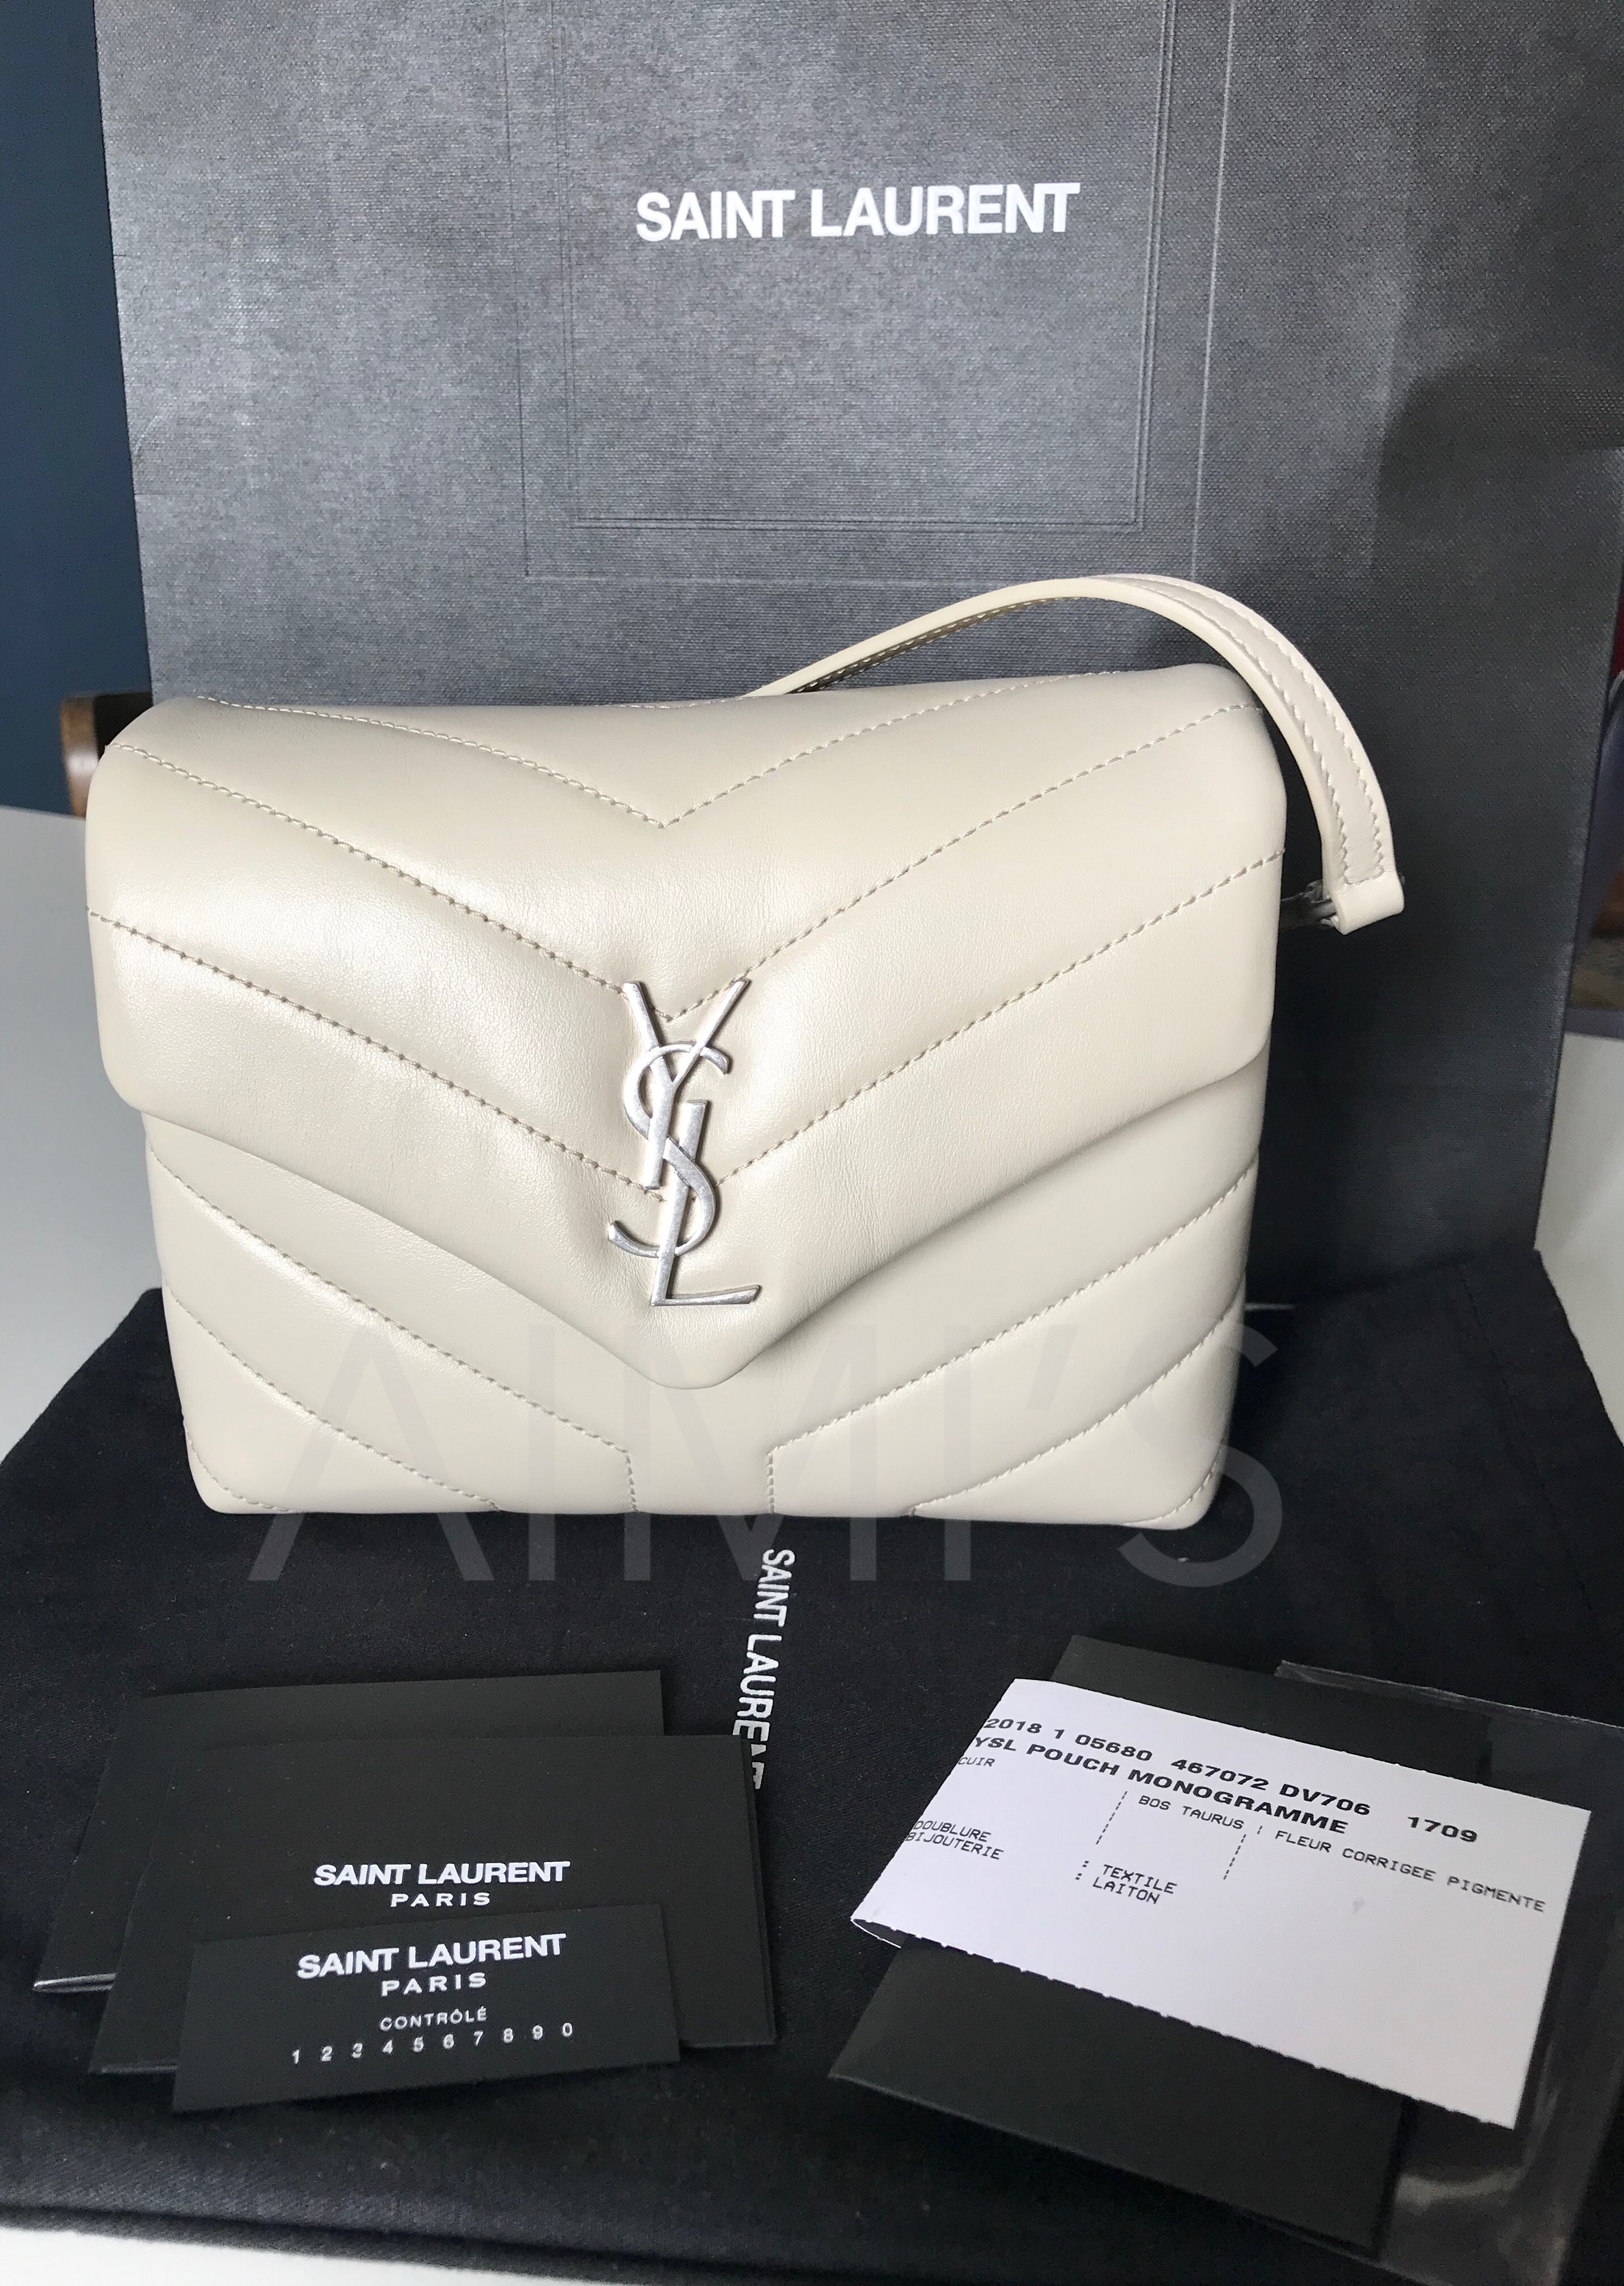 59a482ade83 YSL Toy Loulou Calfskin Leather Bag Measurements   7 ½